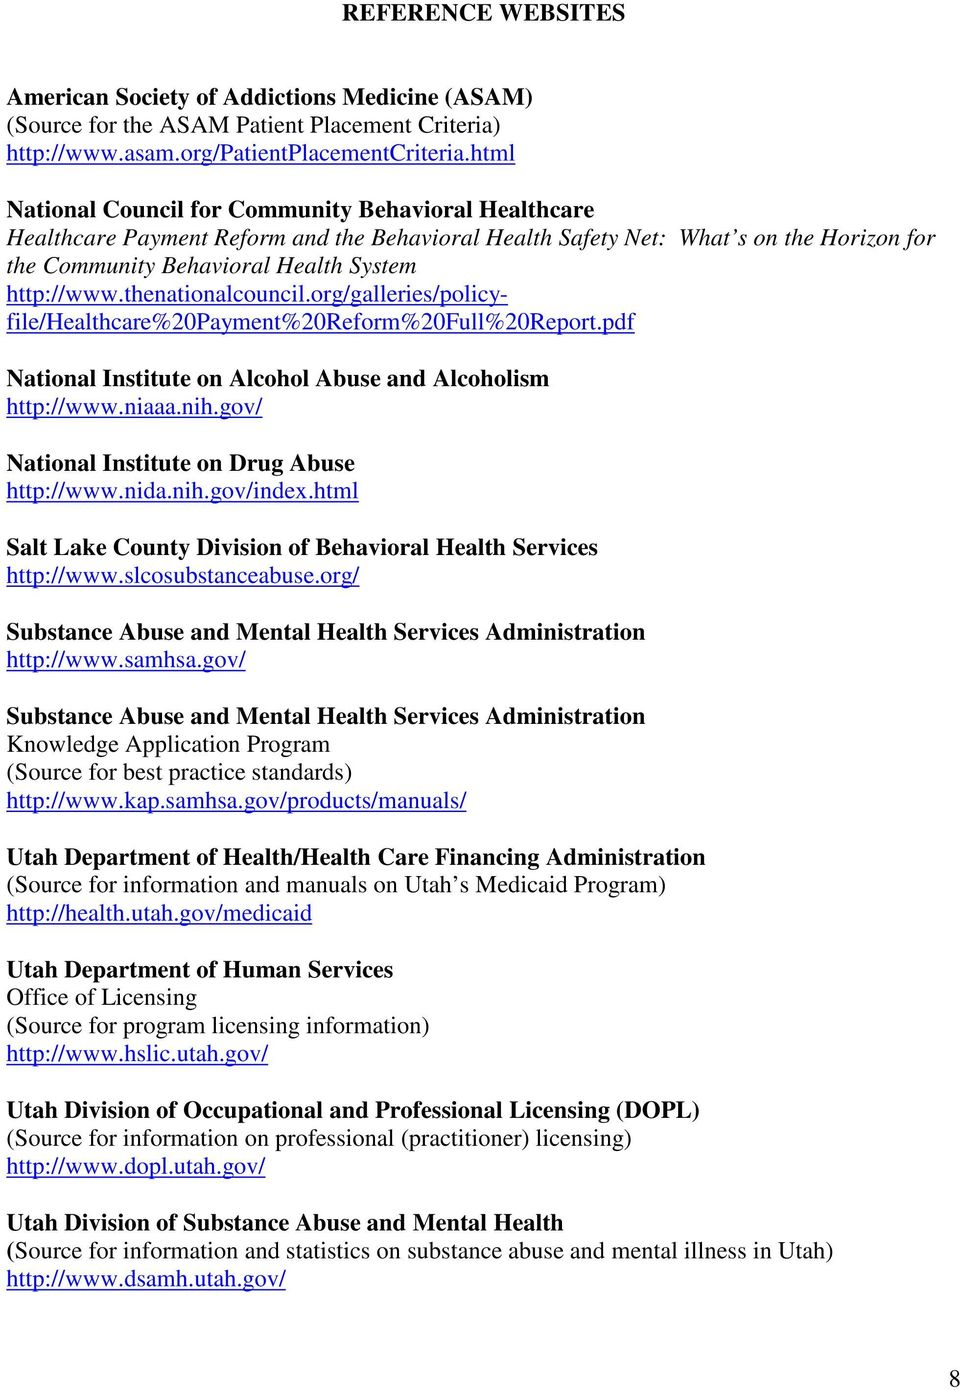 thenationalcouncil.org/galleries/policyfile/healthcare%20payment%20reform%20full%20report.pdf National Institute on Alcohol Abuse and Alcoholism http://www.niaaa.nih.